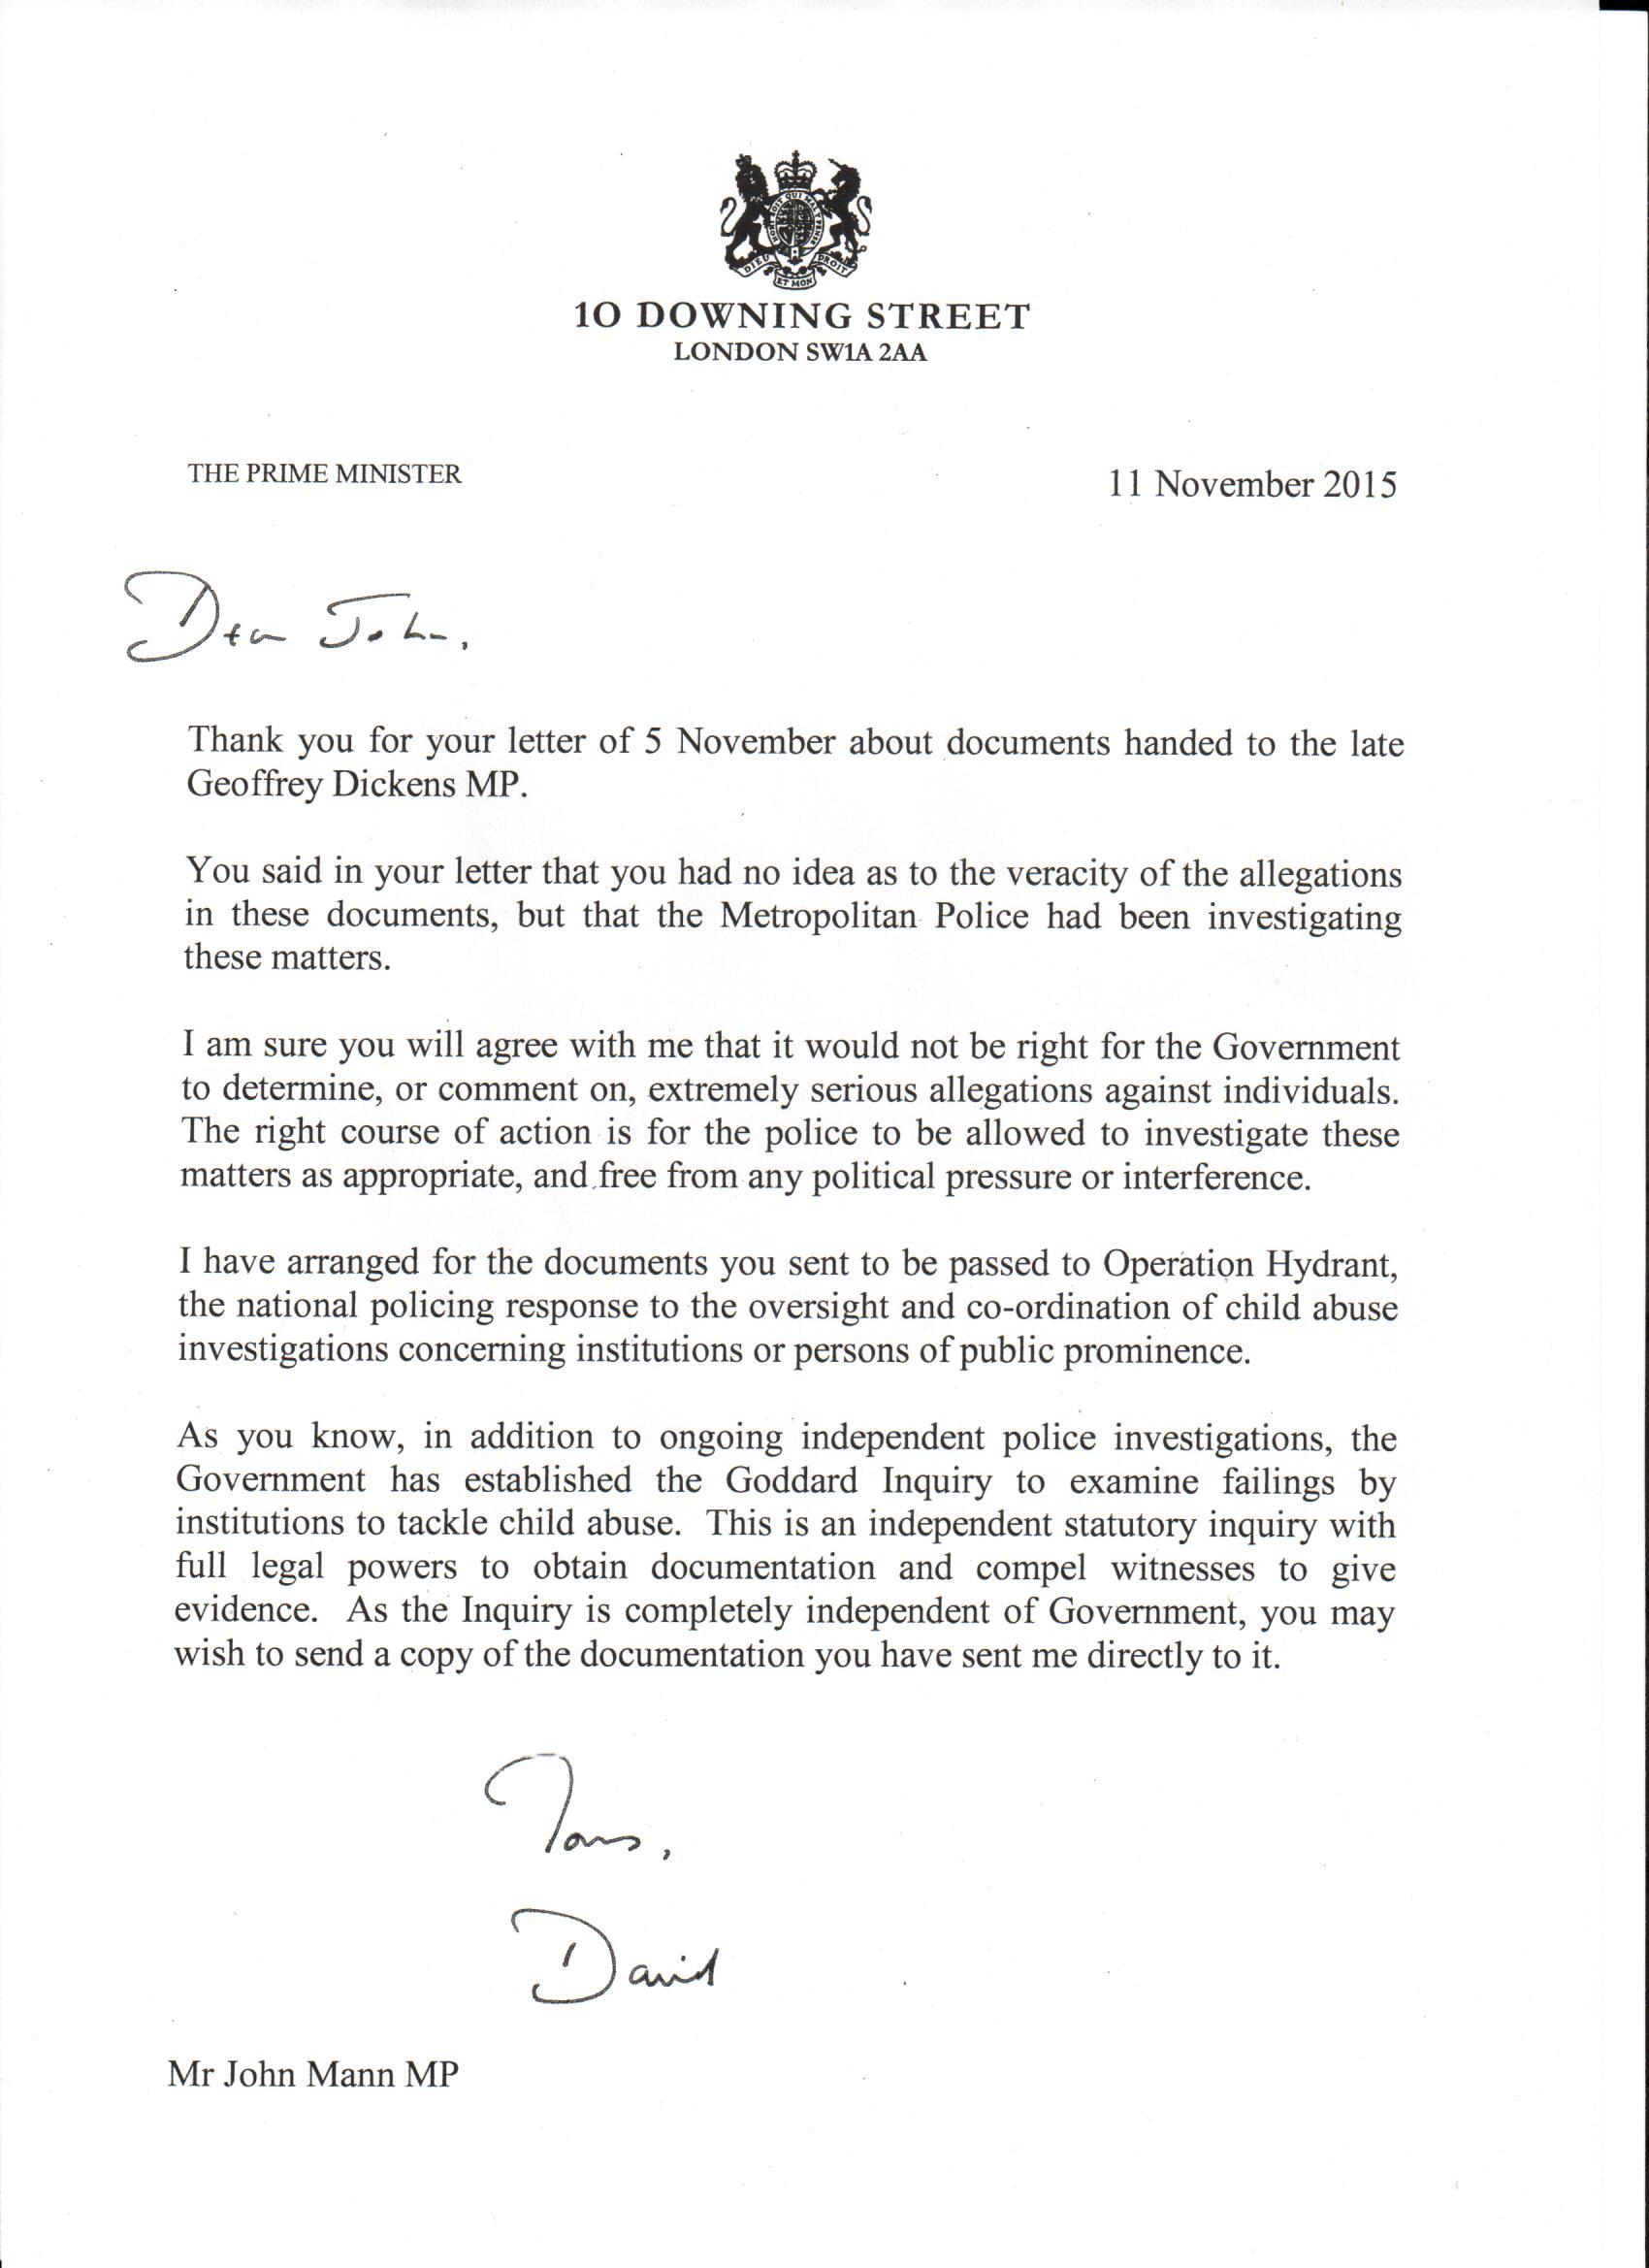 Letter and response from the Prime Minister regarding the Dickens – Response Letter